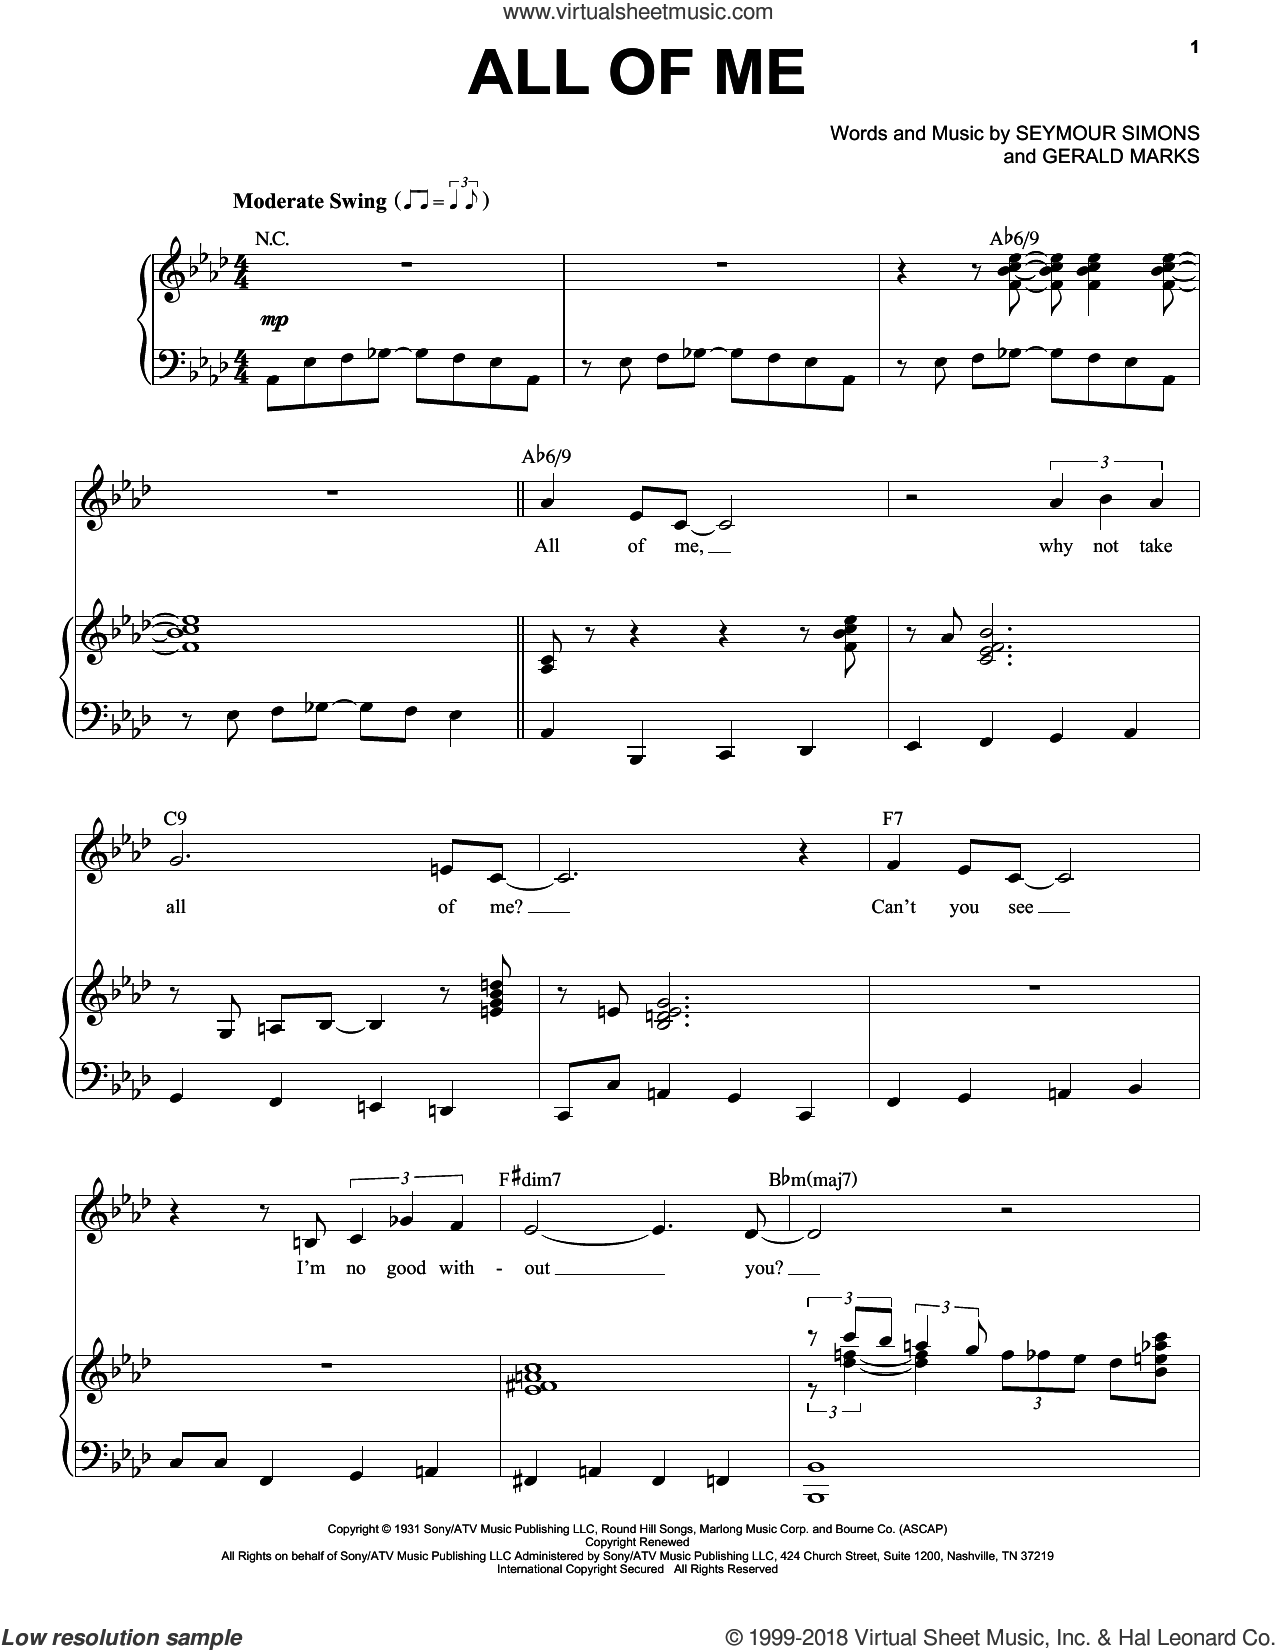 All Of Me sheet music for voice and piano by Frank Sinatra, Gerald Marks and Seymour Simons, intermediate